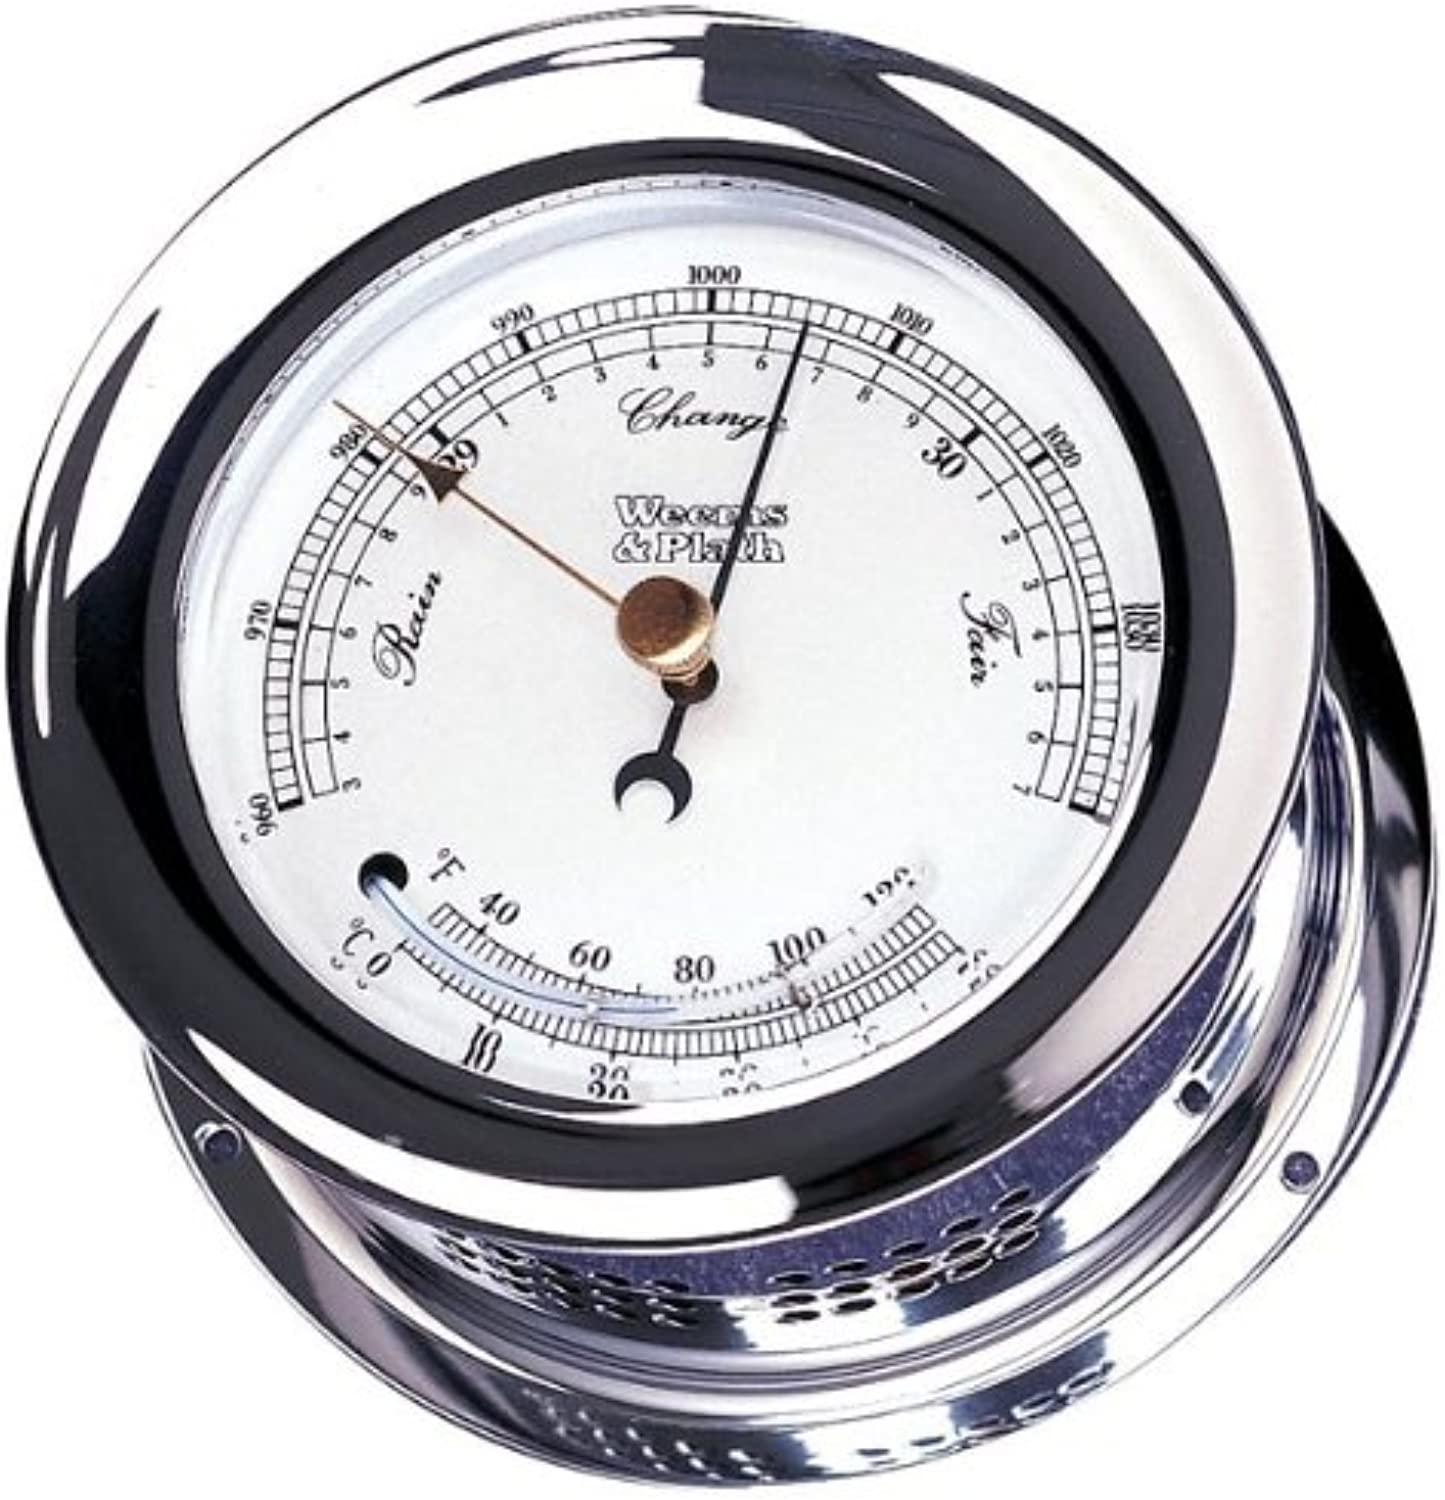 Weems & Plath Atlantis Collection Barometer and Thermometer Combination (Chrome)